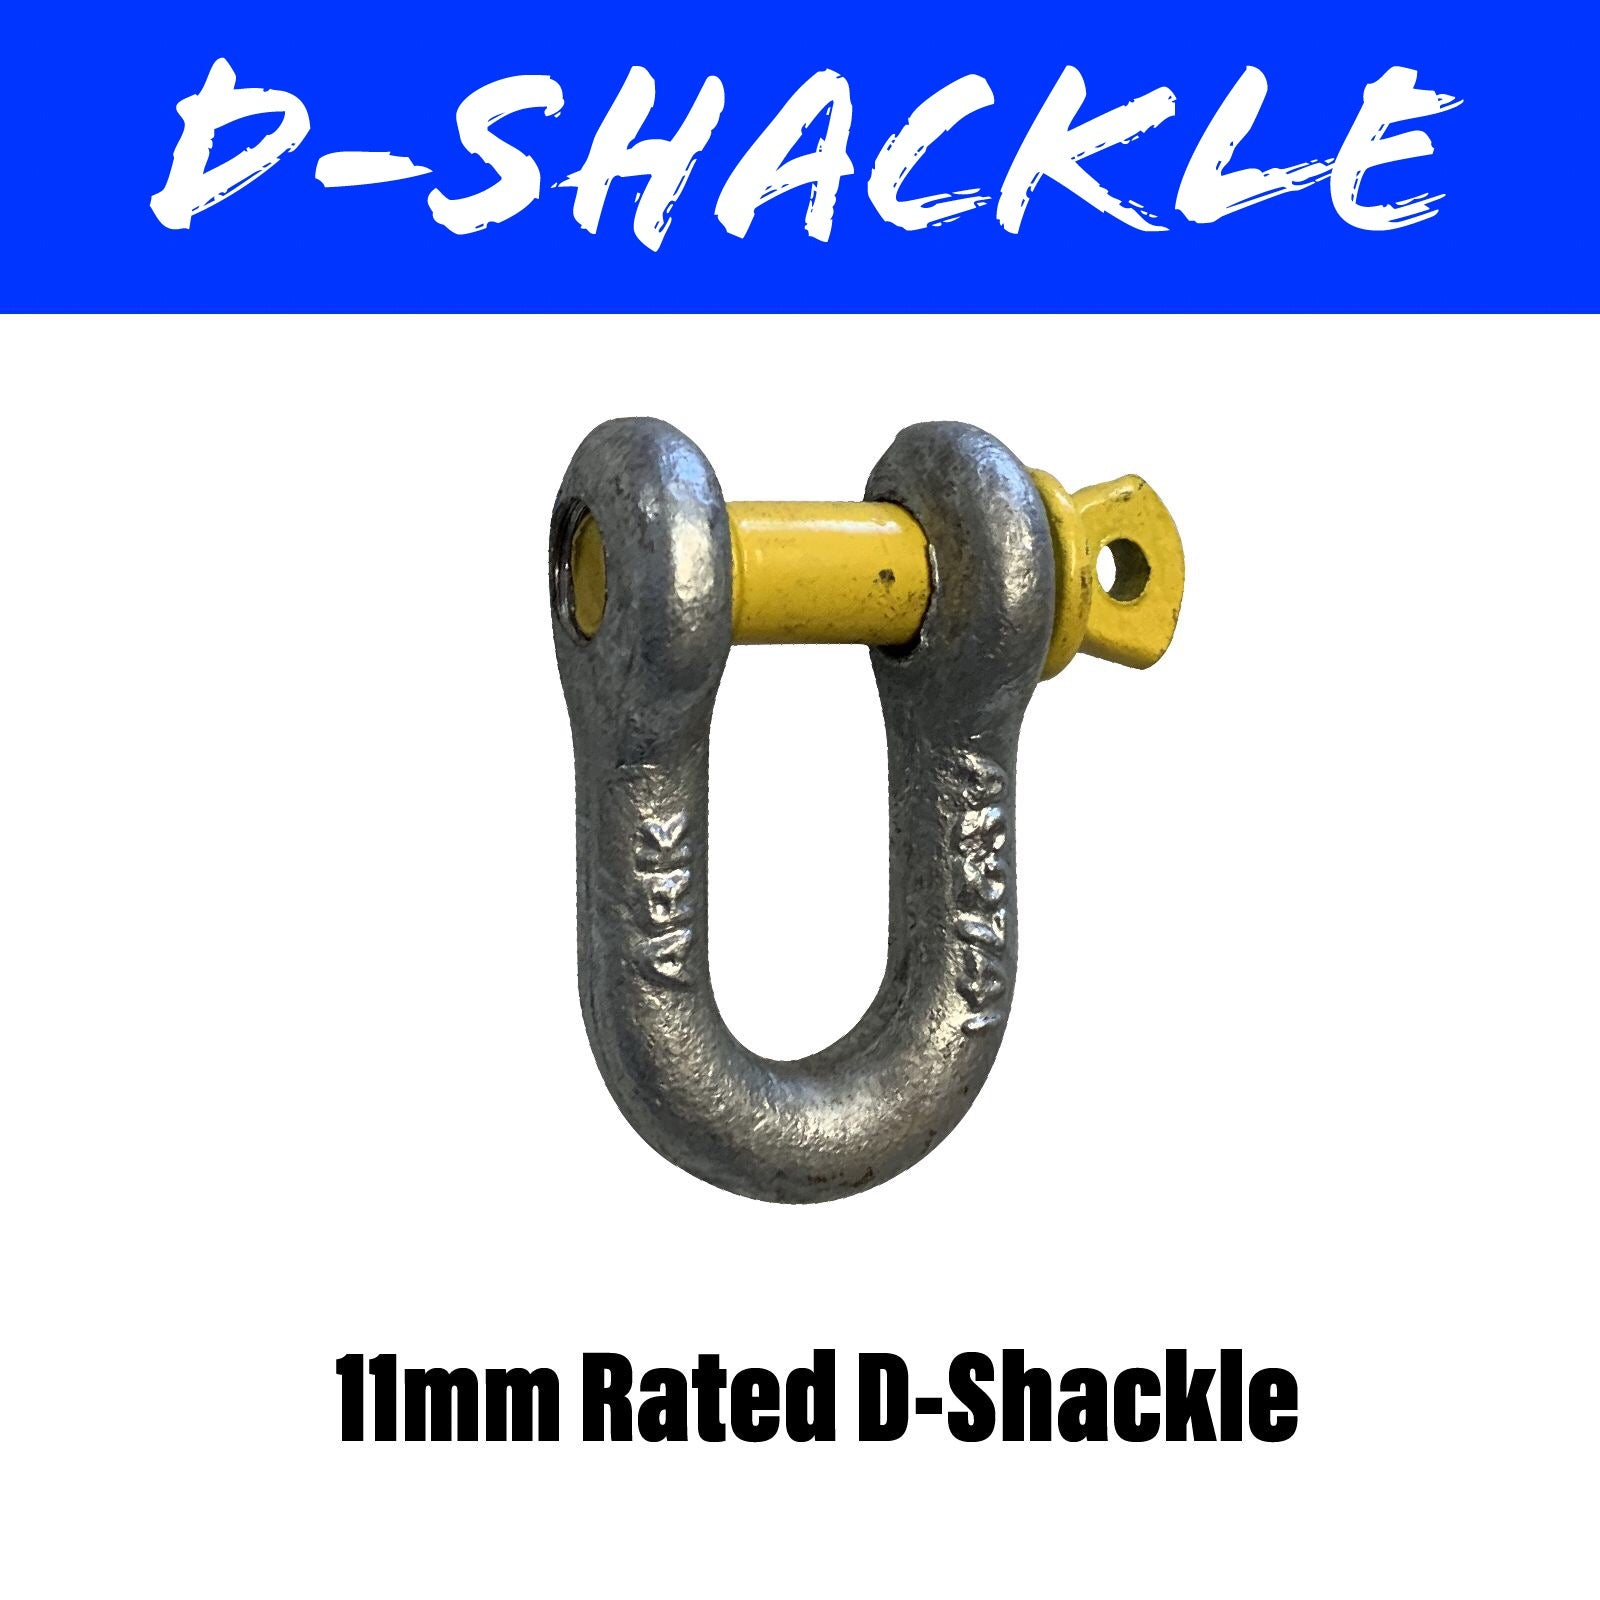 11MM RATED D-SHACKLE